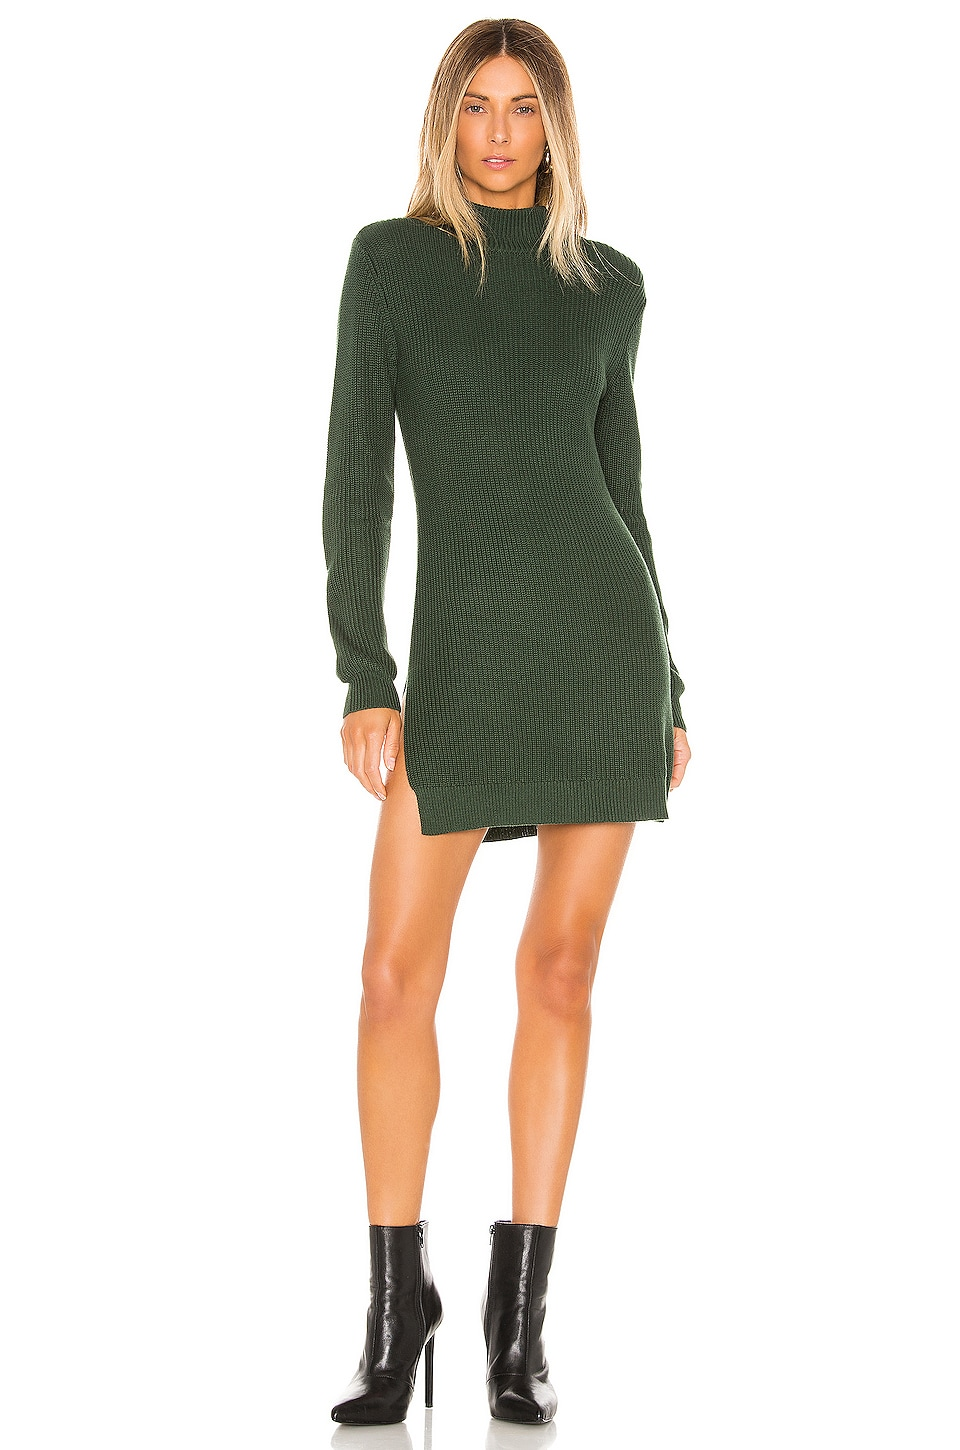 Lovers + Friends Luella Sweater in Forest Green